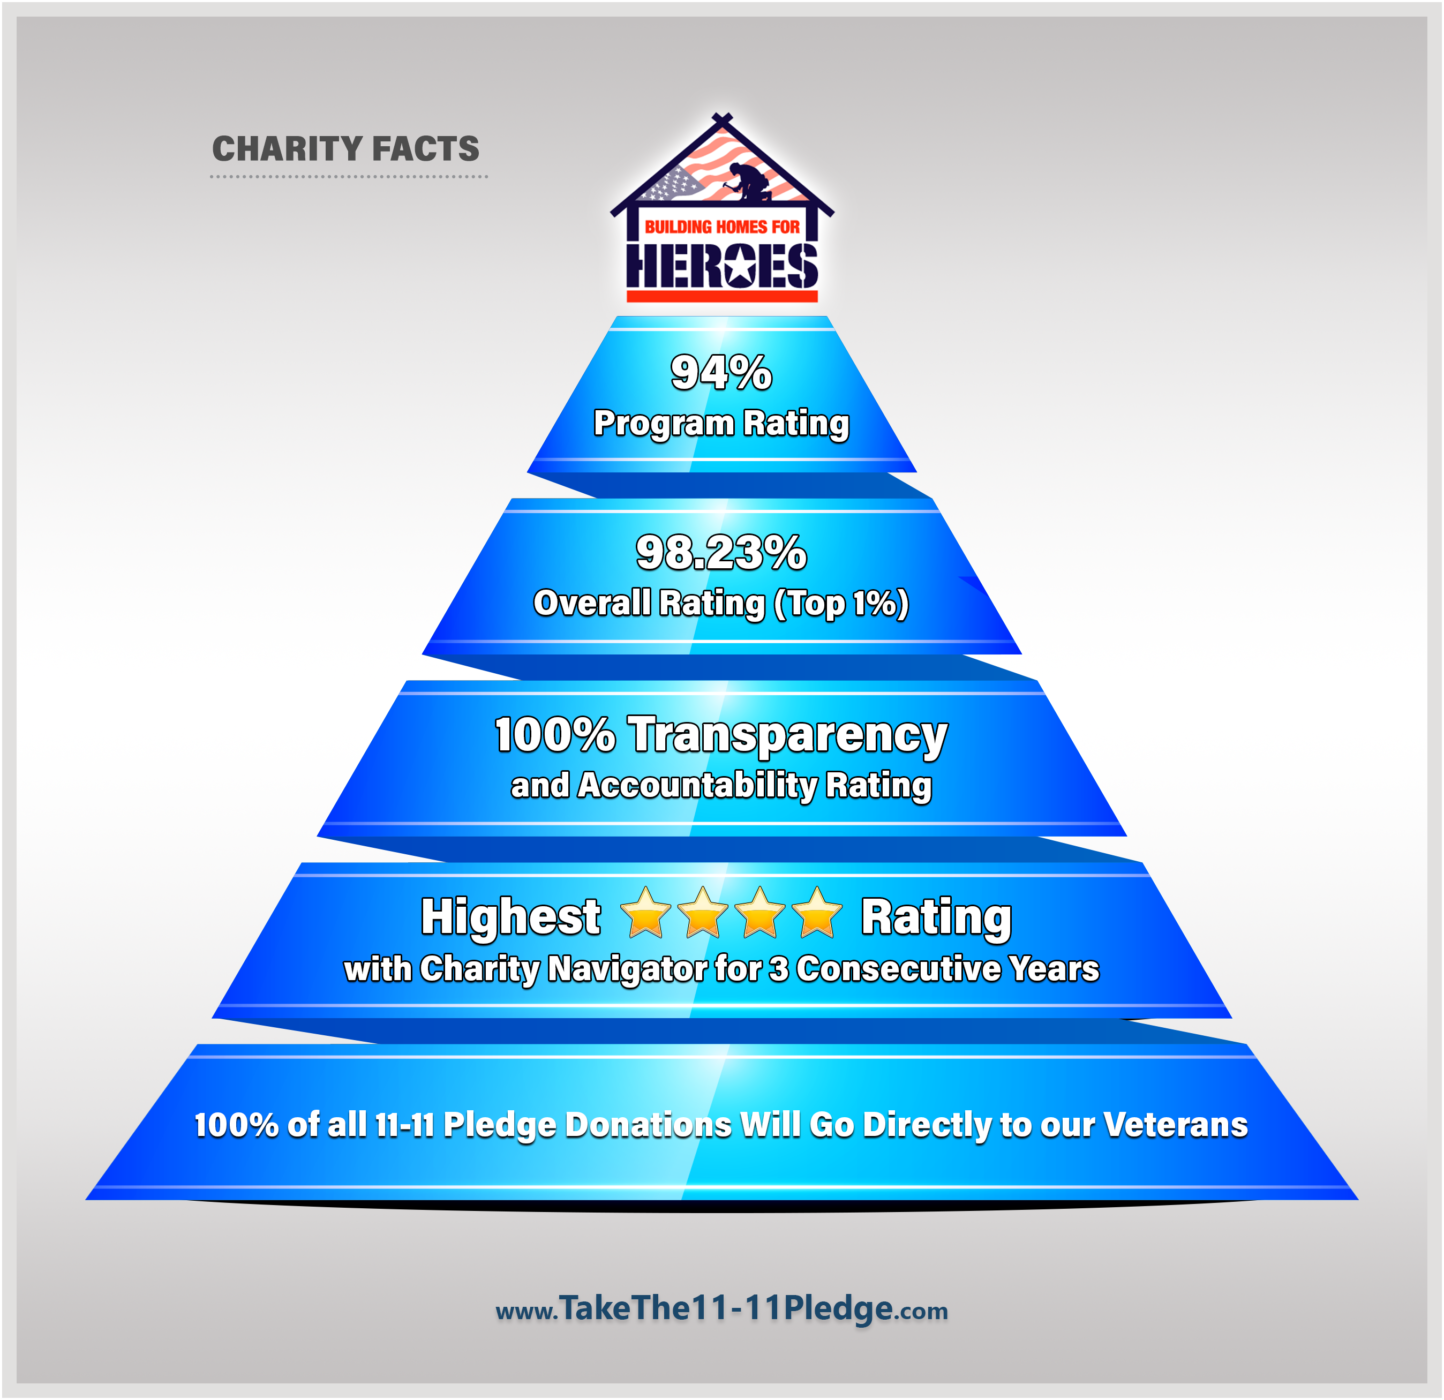 Charity Pyramid Facts